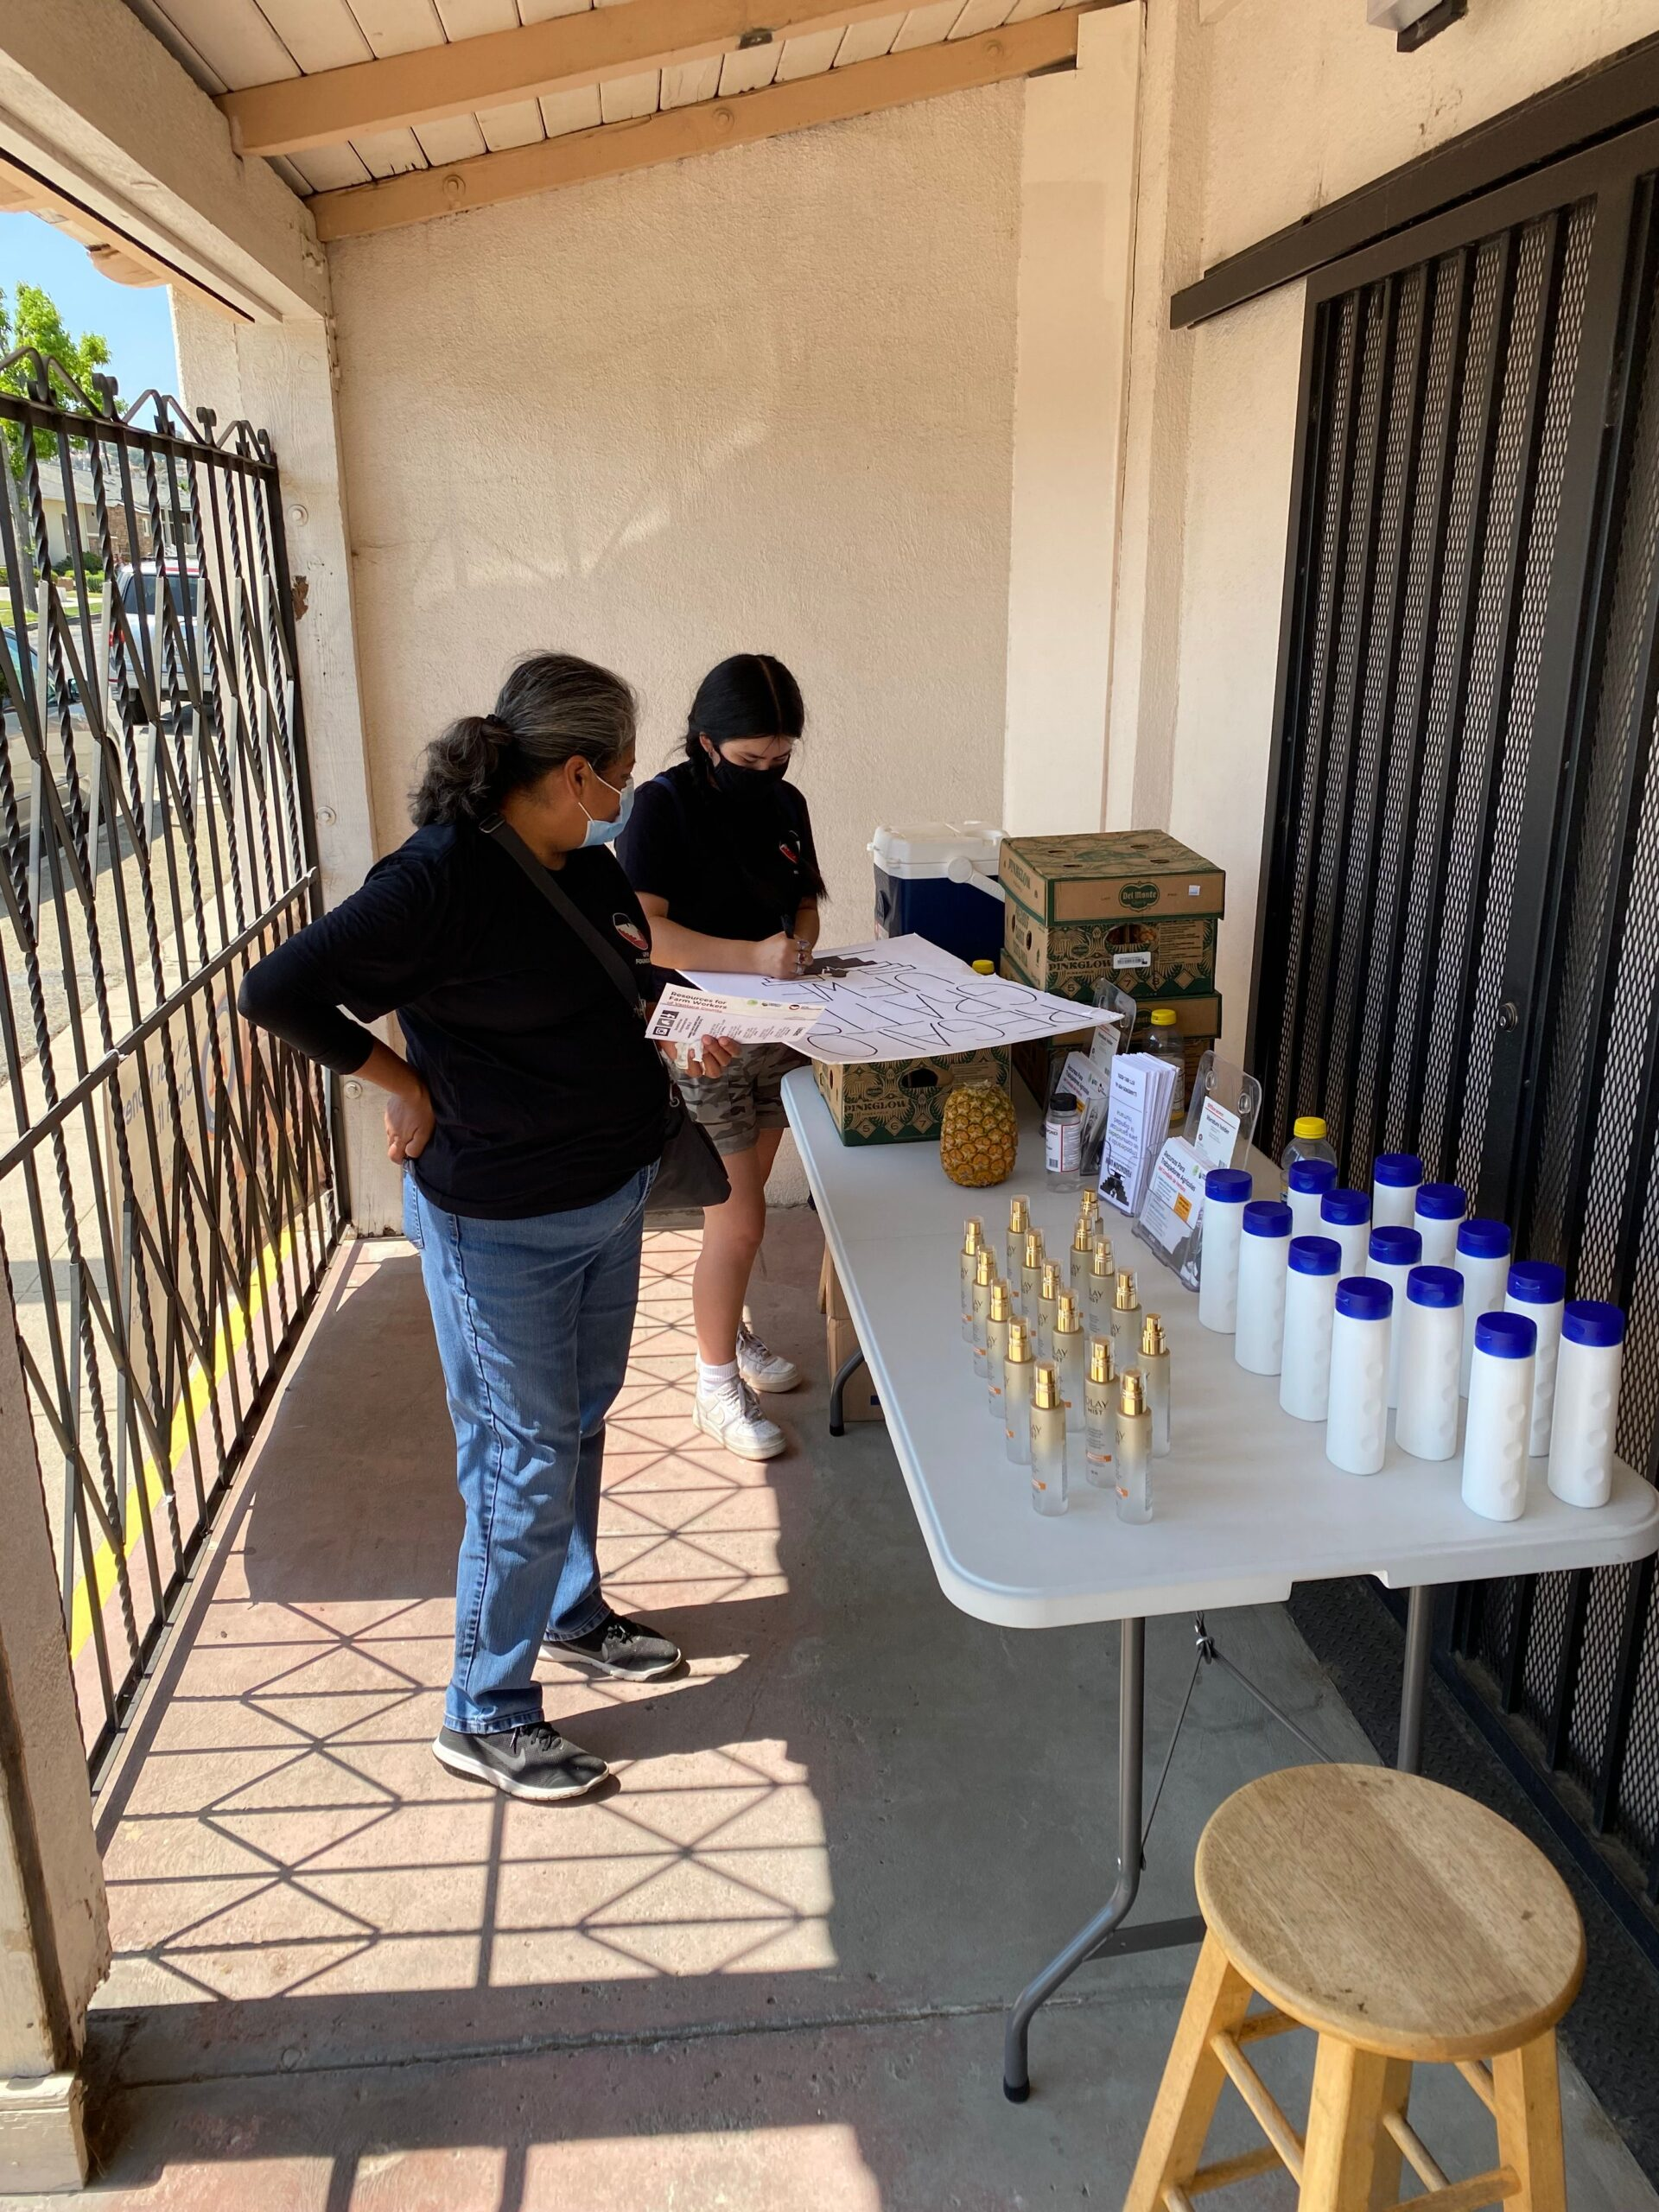 JAFRA Cosmetics Donates $5,000 Worth of Sun Care to Farmers In Need